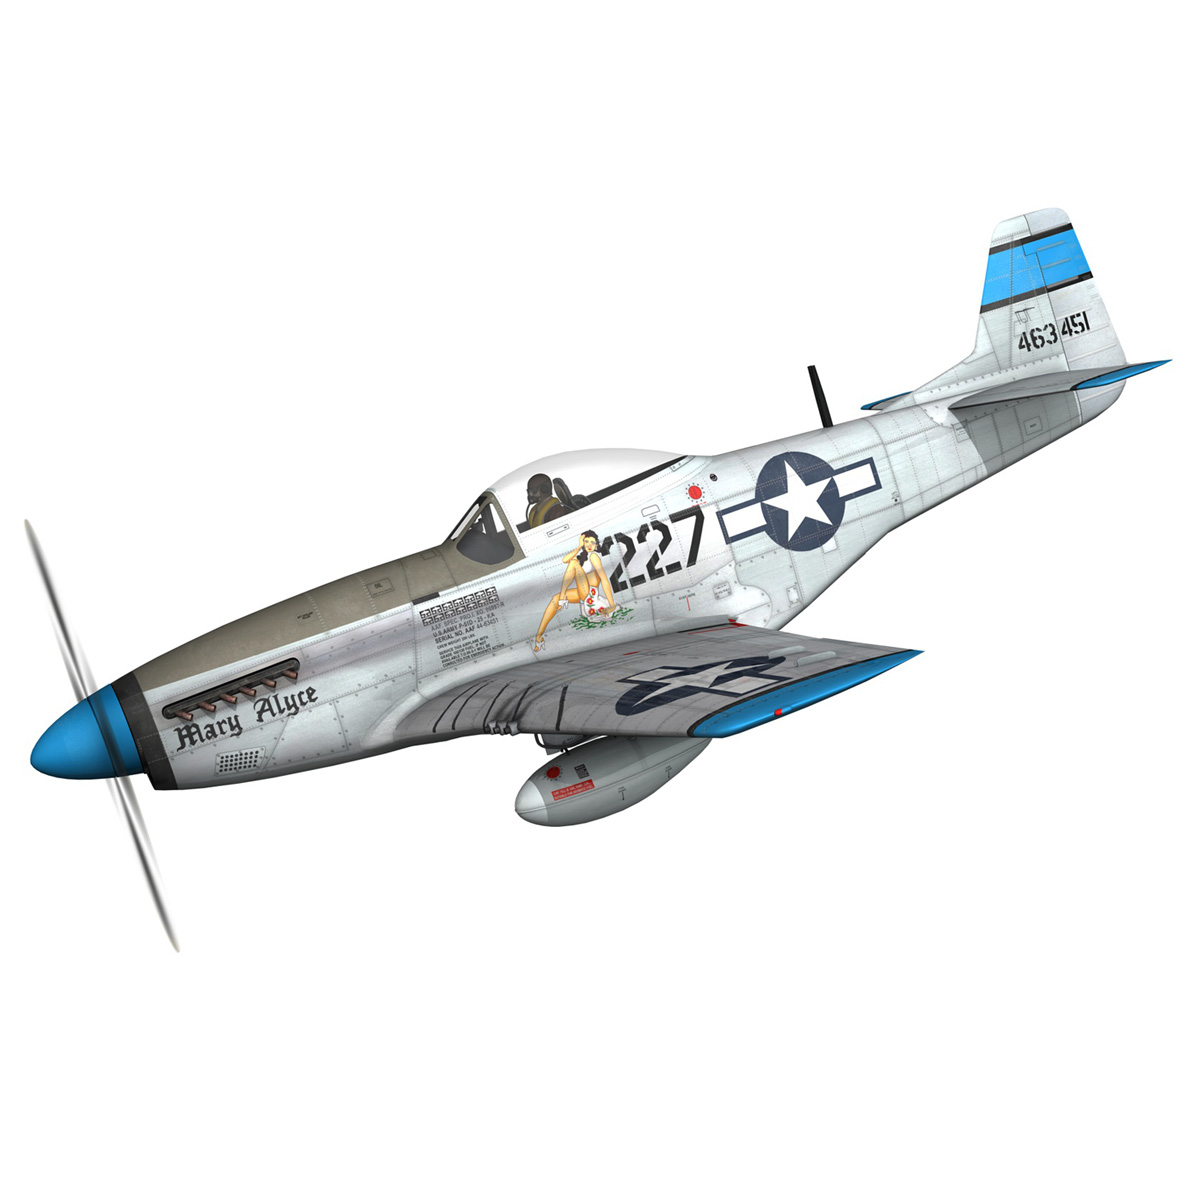 north american p-51d – mustang – mary alyce 3d model 3ds fbx c4d lwo obj 267567